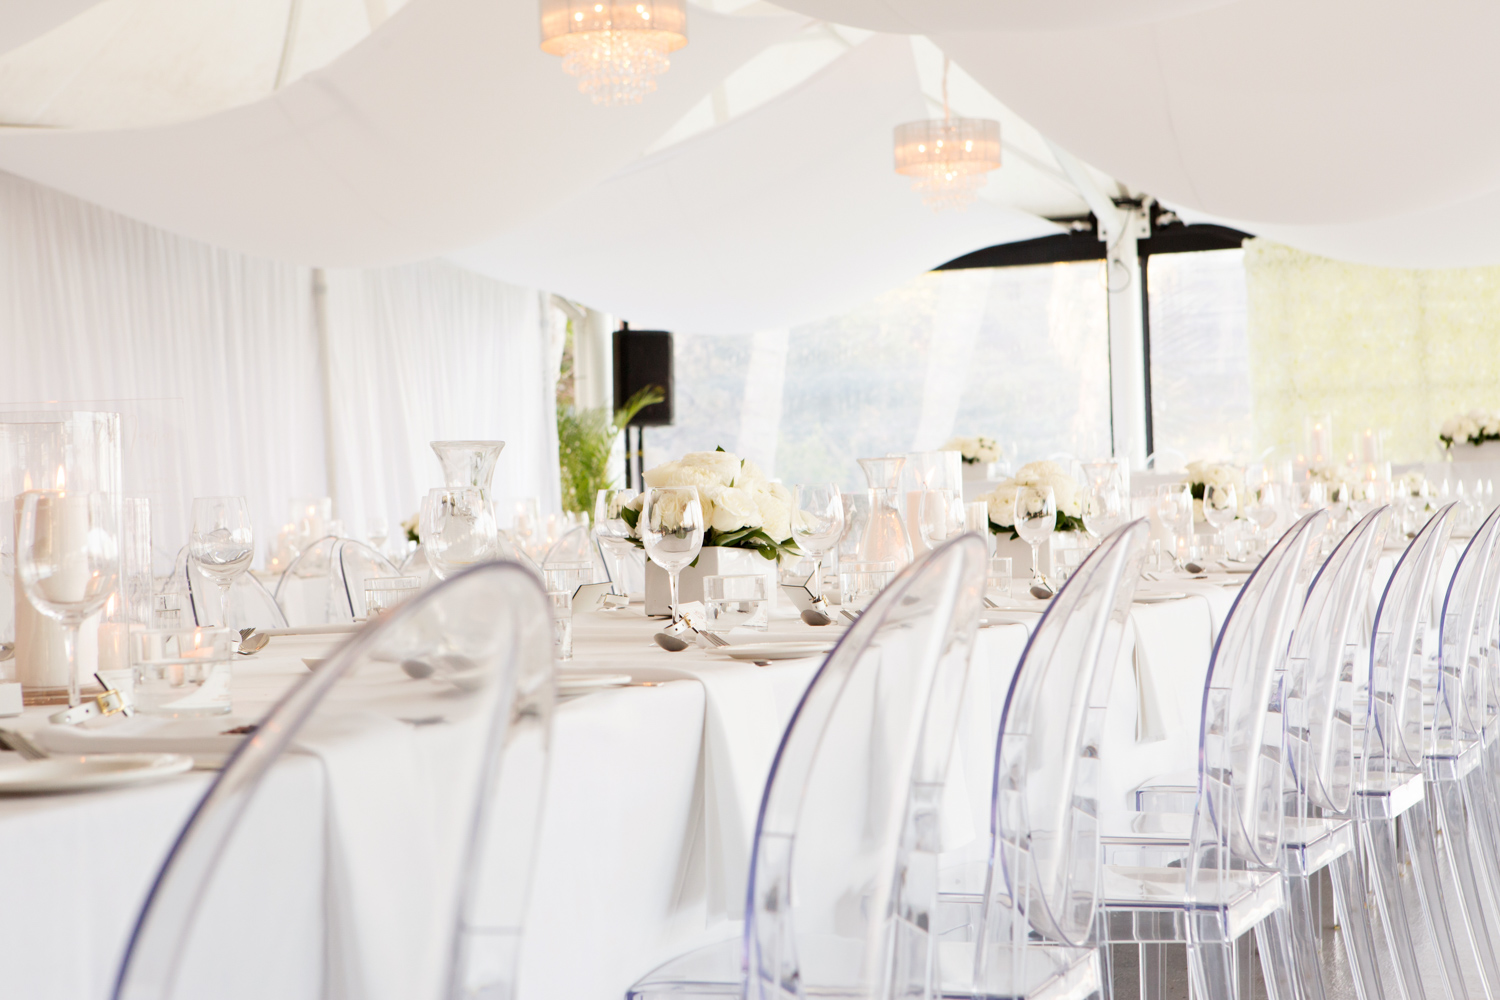 wedding-0154-outrigger-reception-white-clear-chairs-brisbane.jpg